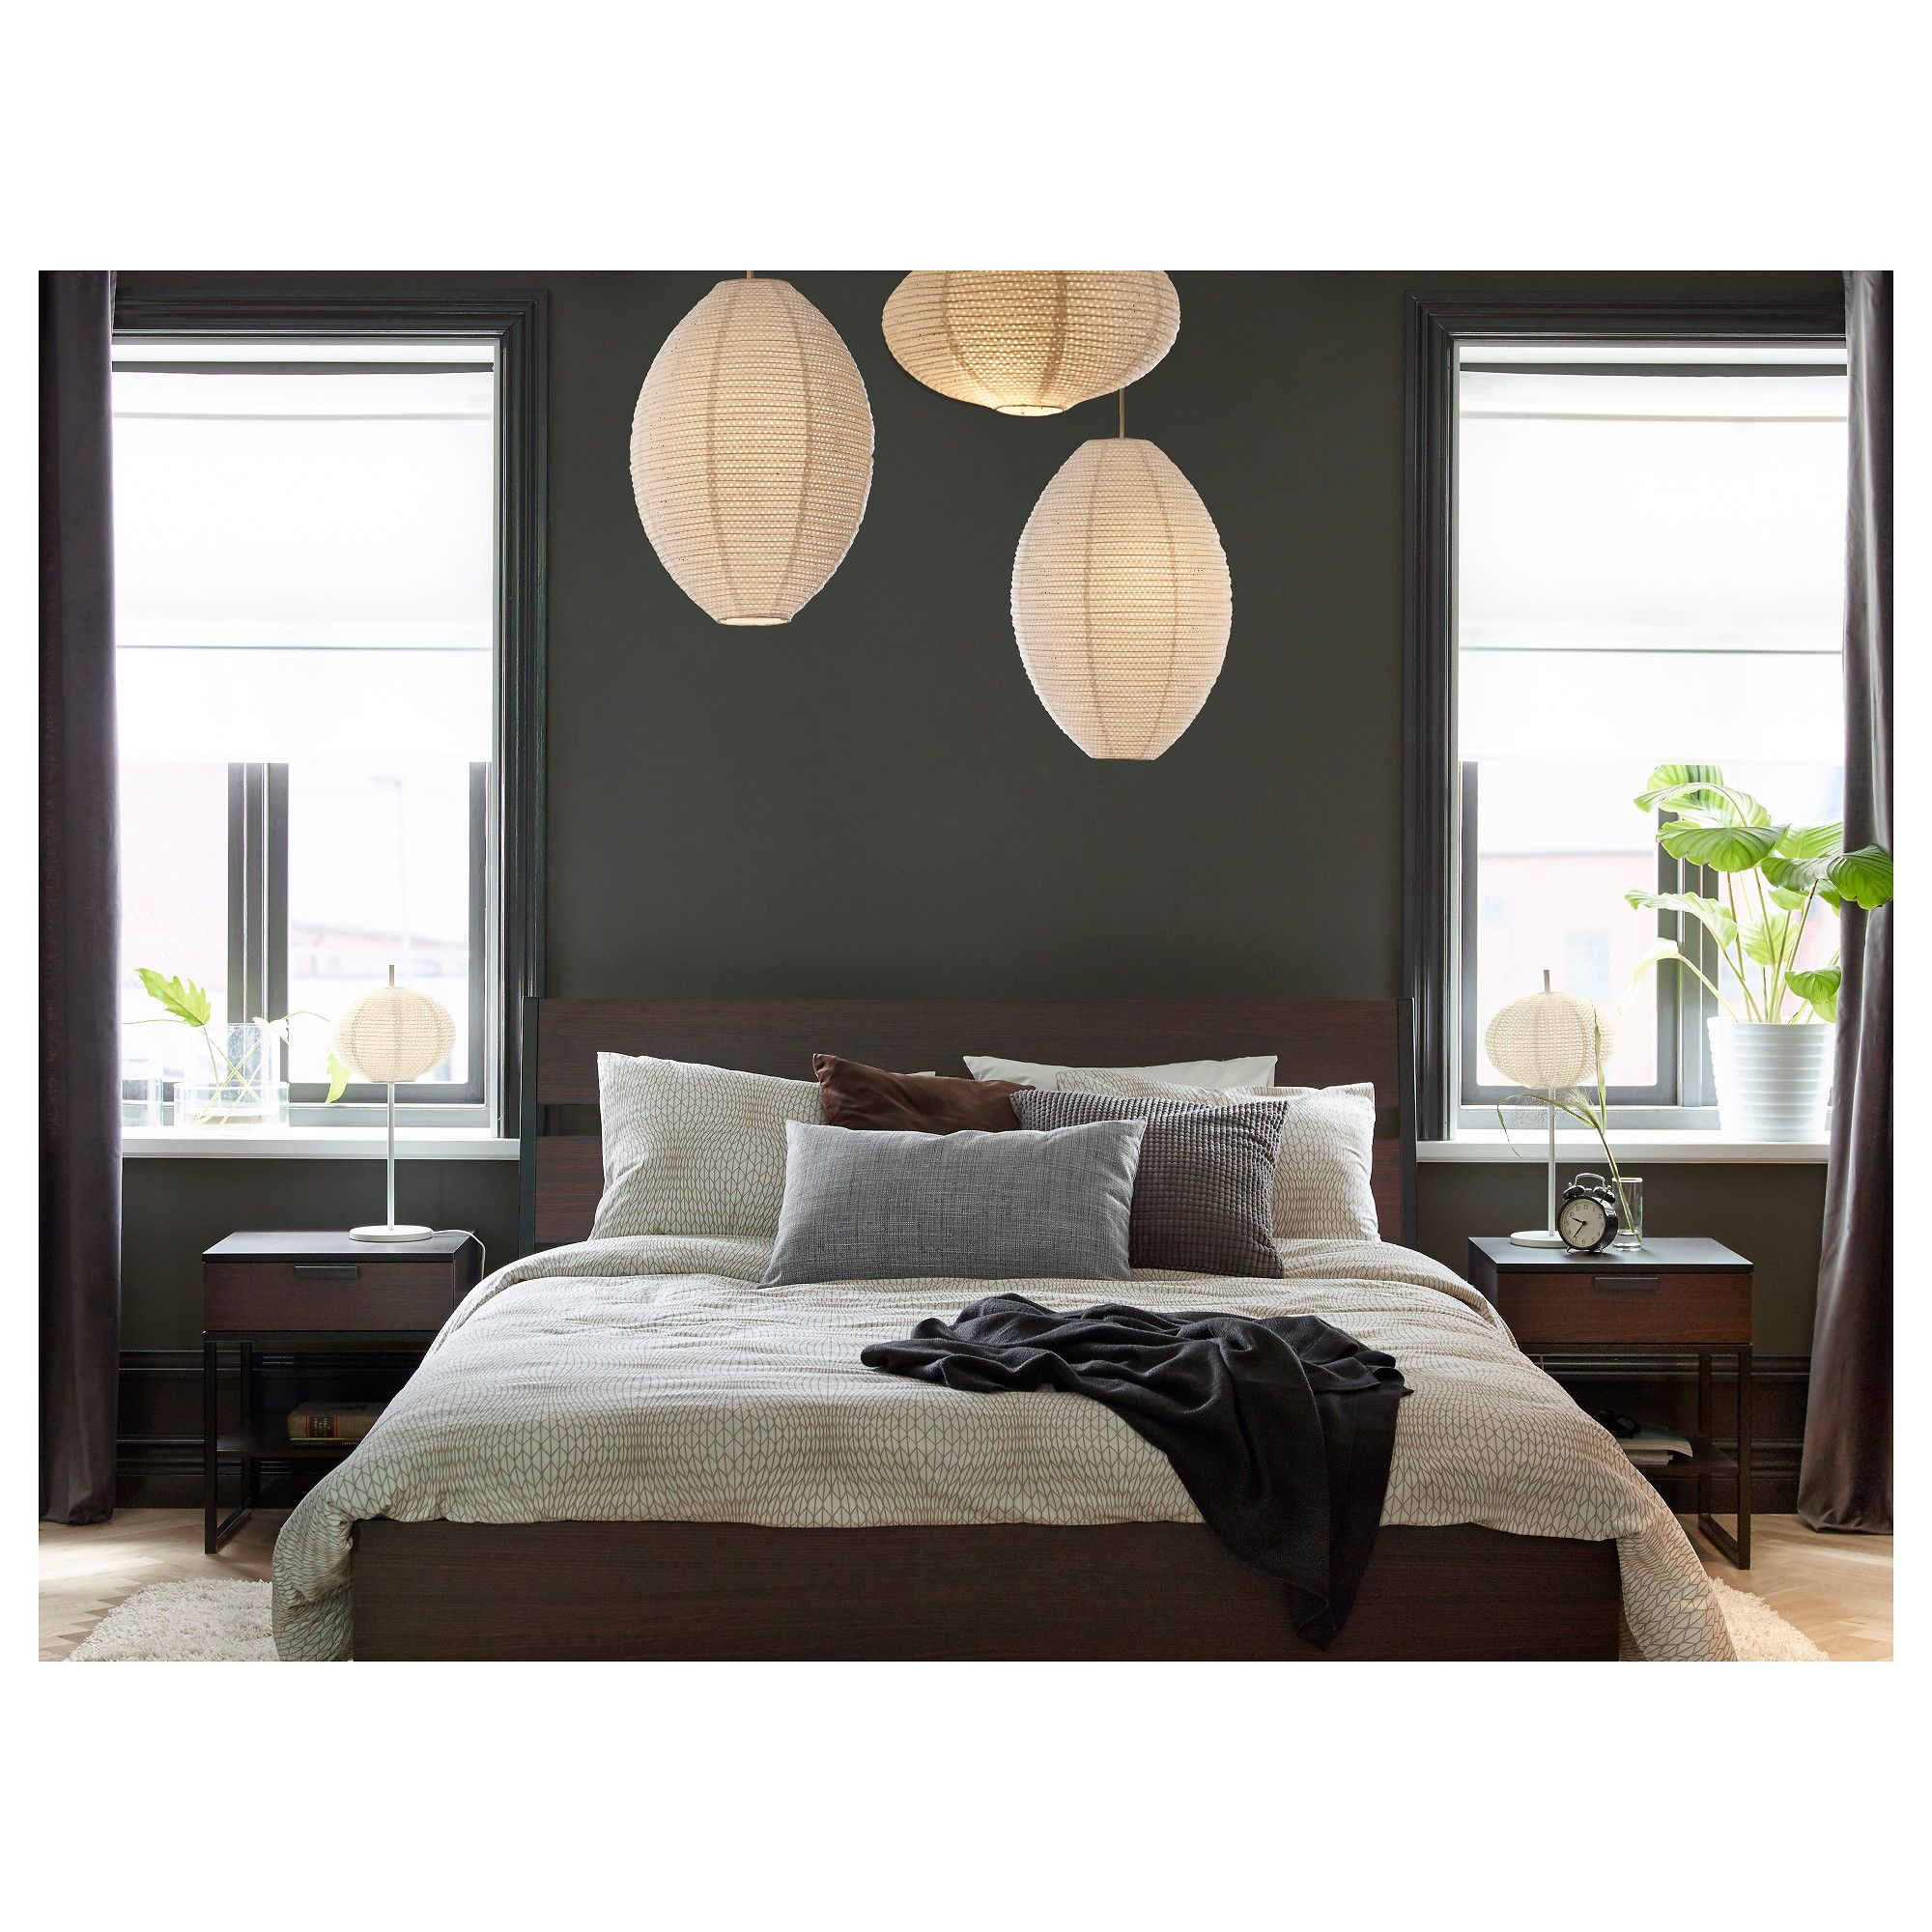 Shop for Furniture, Home Accessories & More | Ikea bed ...